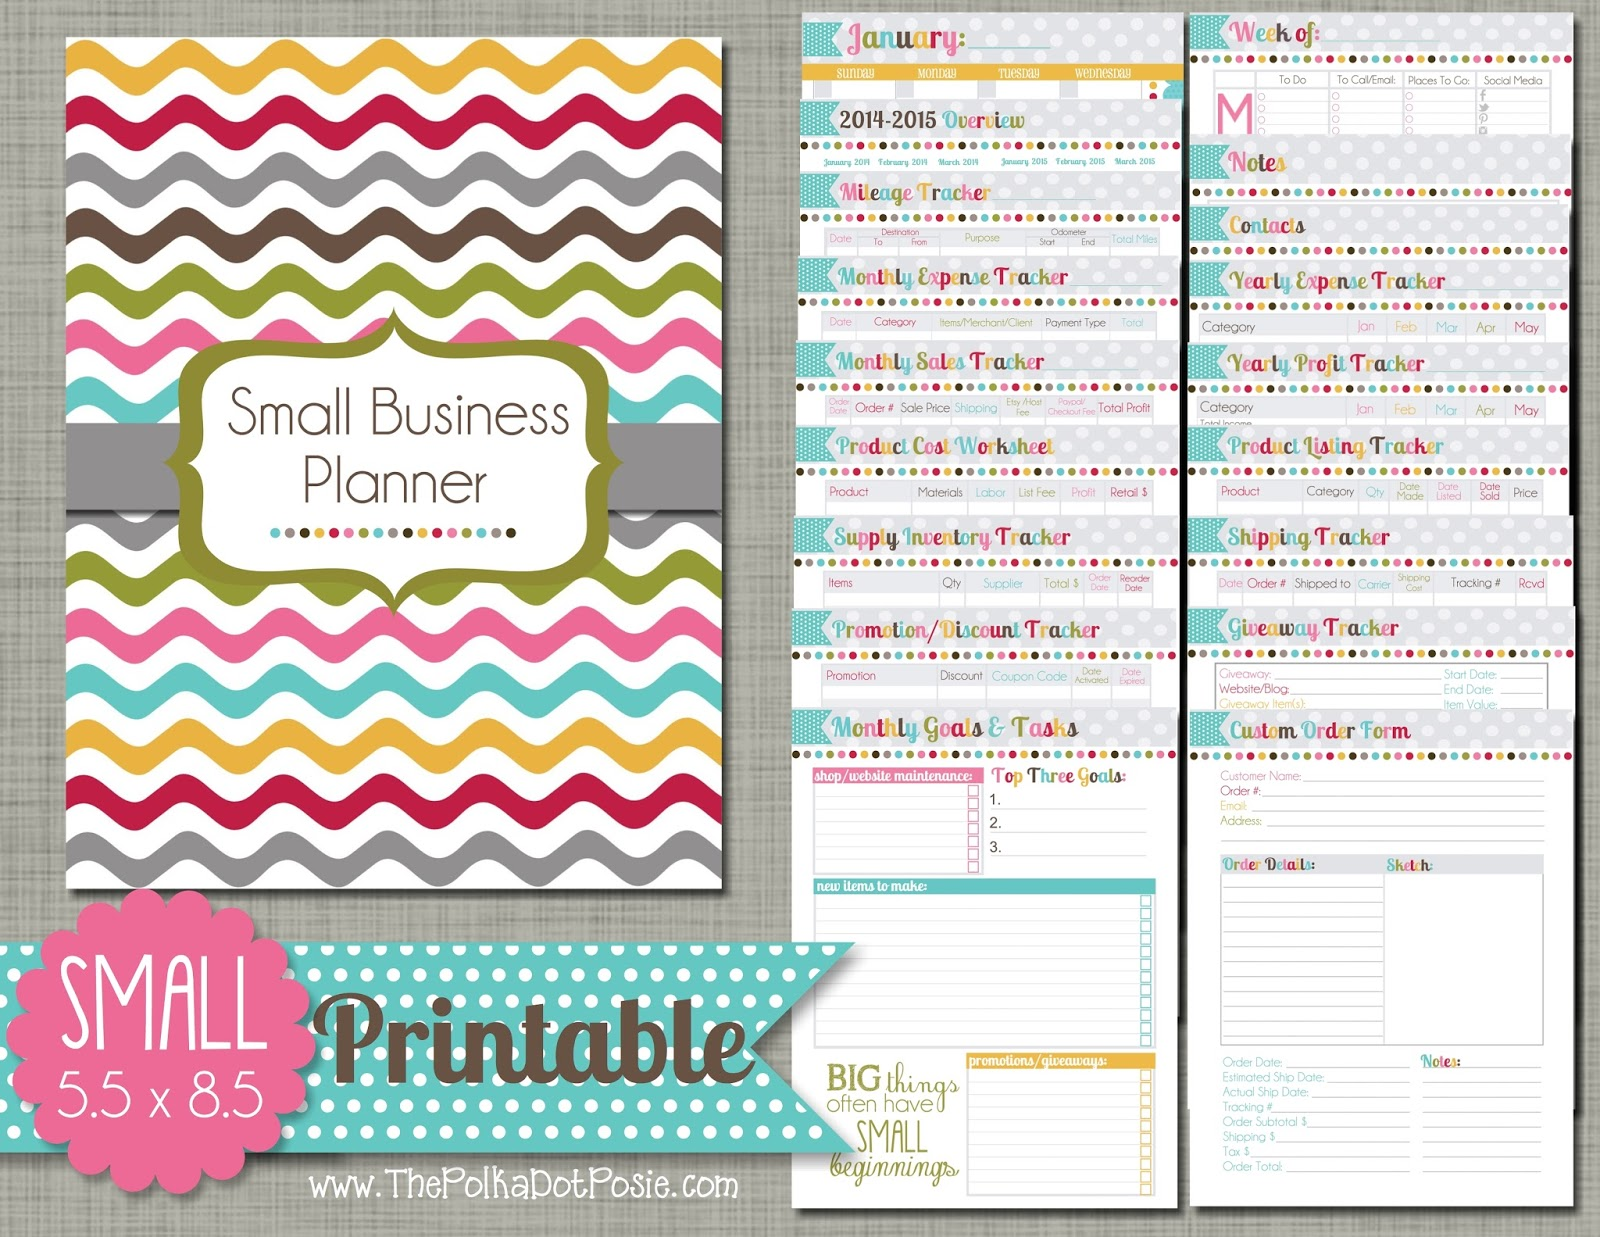 Large Printable Planner The Polka Dot Posie